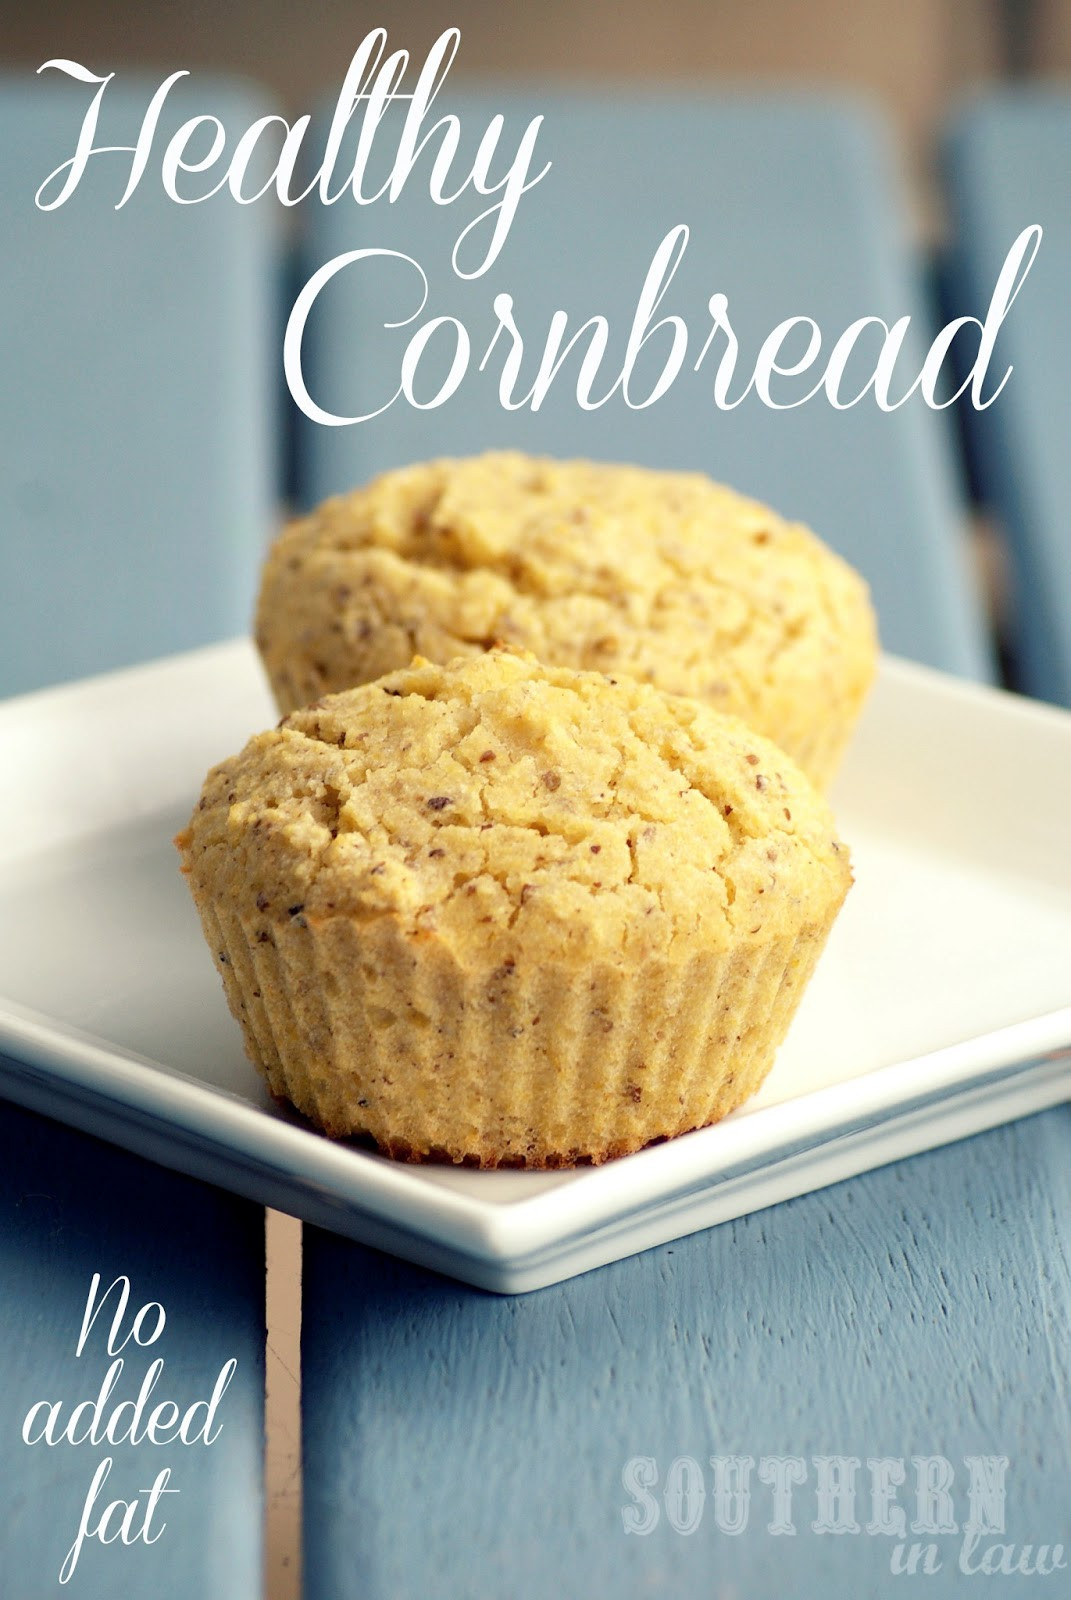 Healthy Cornbread Recipe 20 Of the Best Ideas for southern In Law Recipe Healthy Cornbread Muffins